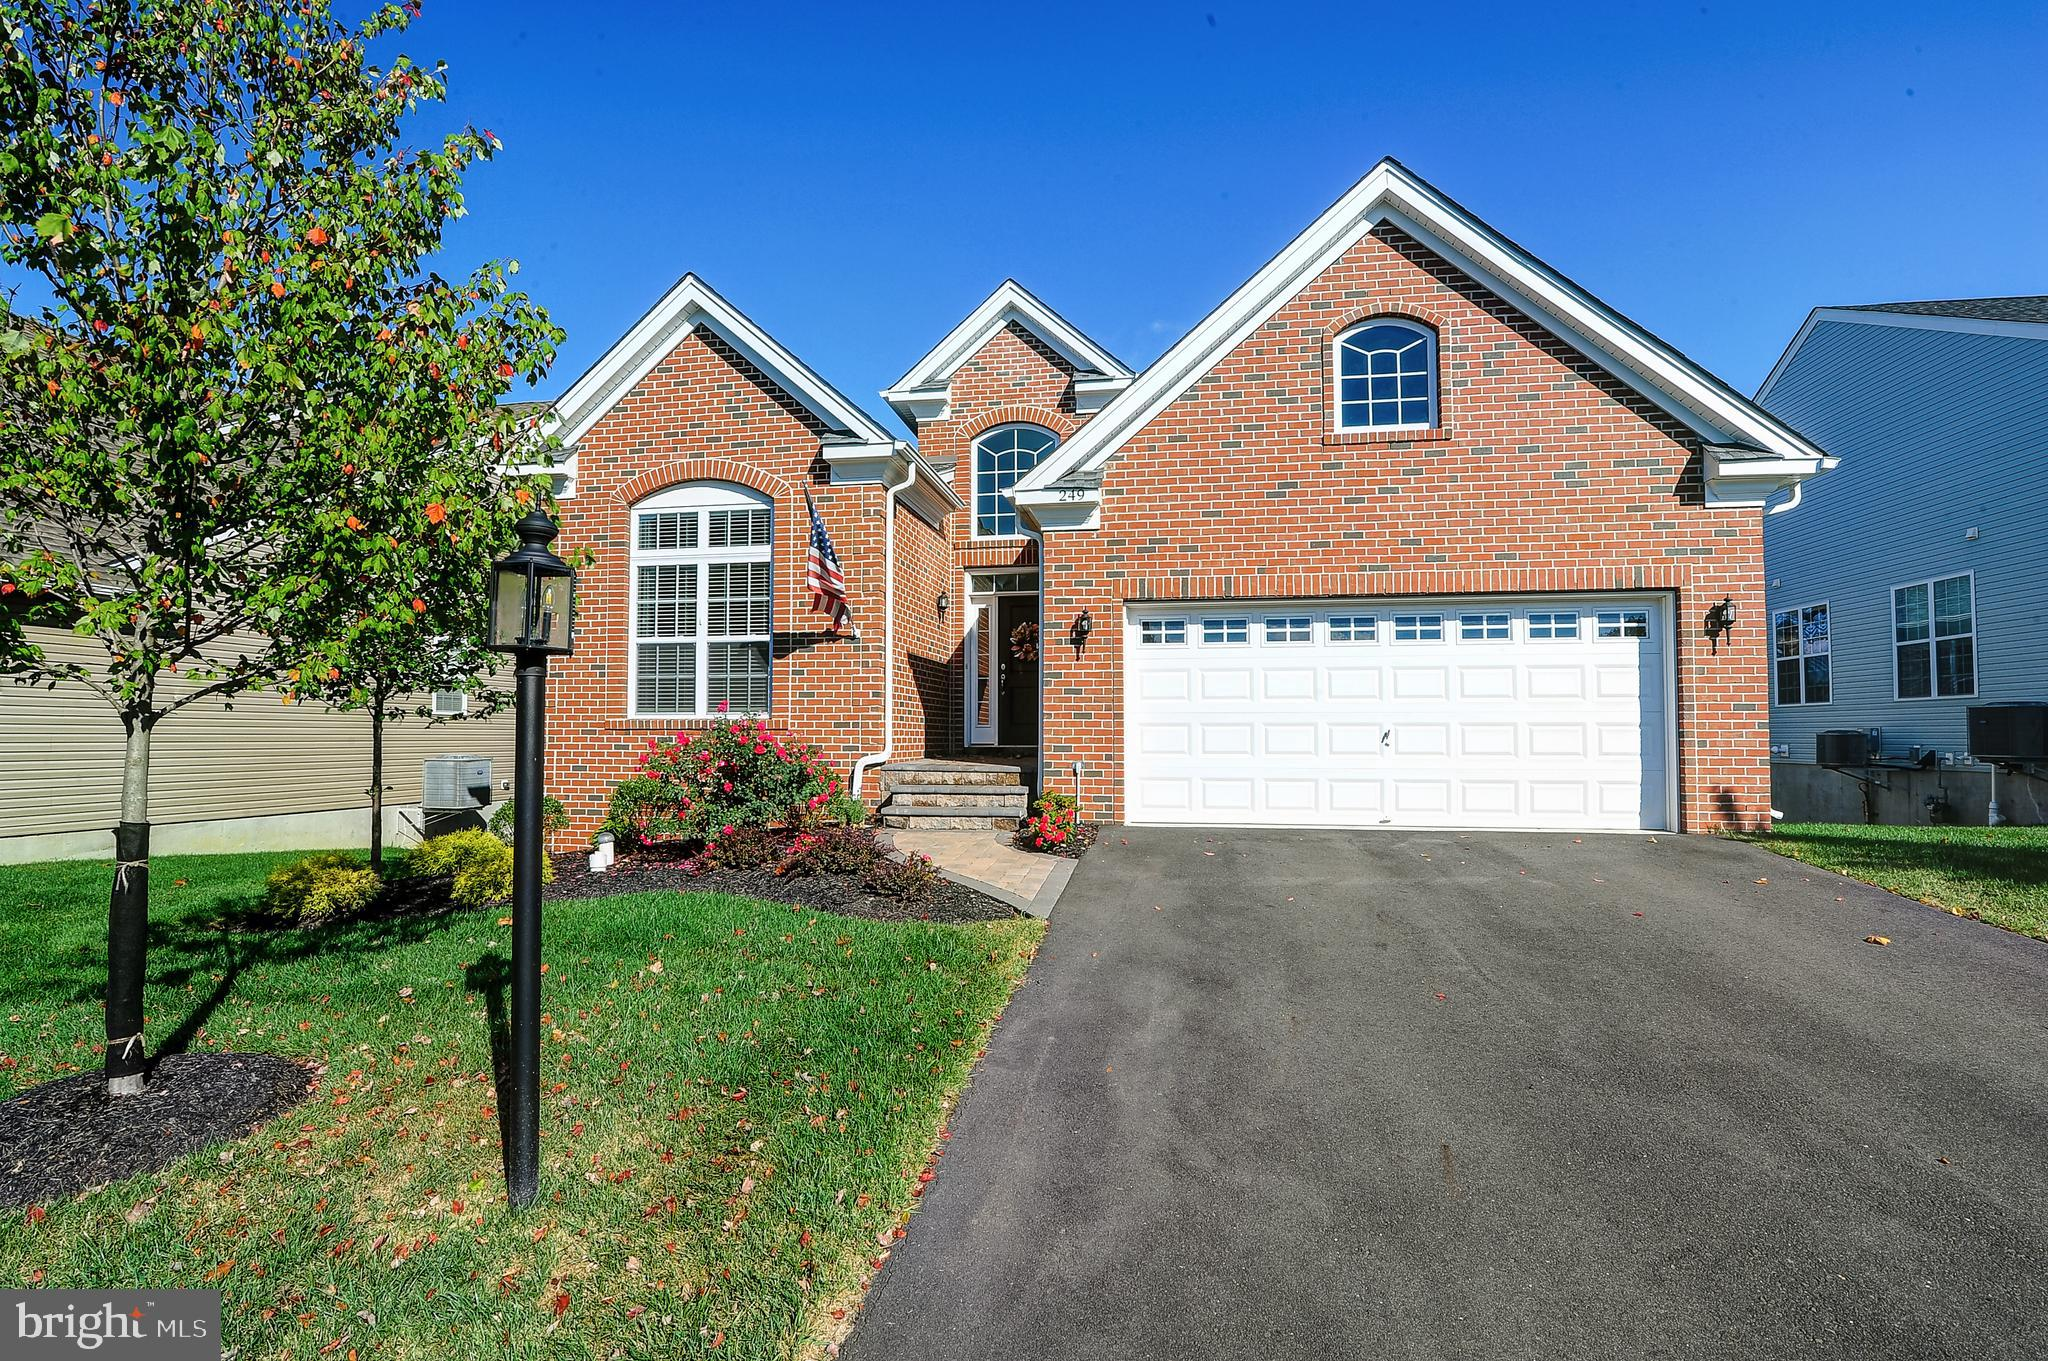 249 HOOVER WAY, MORRISVILLE, PA 19067